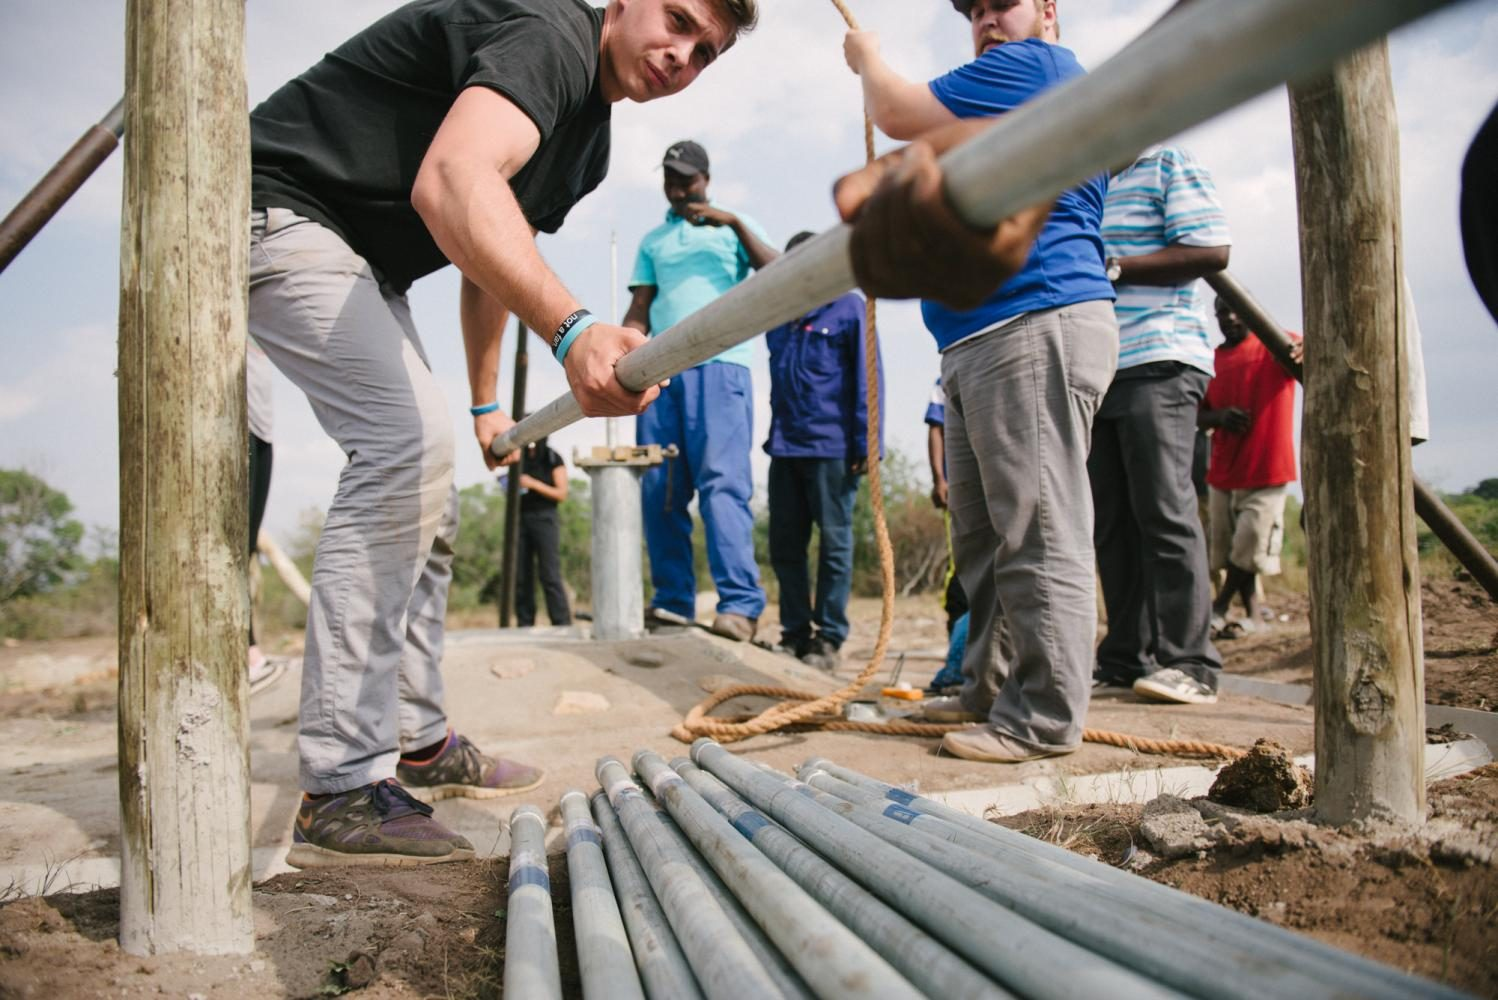 Evan Wesley, Thirst Project staffer, works to complete the building of a freshwater well in Kuntazi Swaziland.